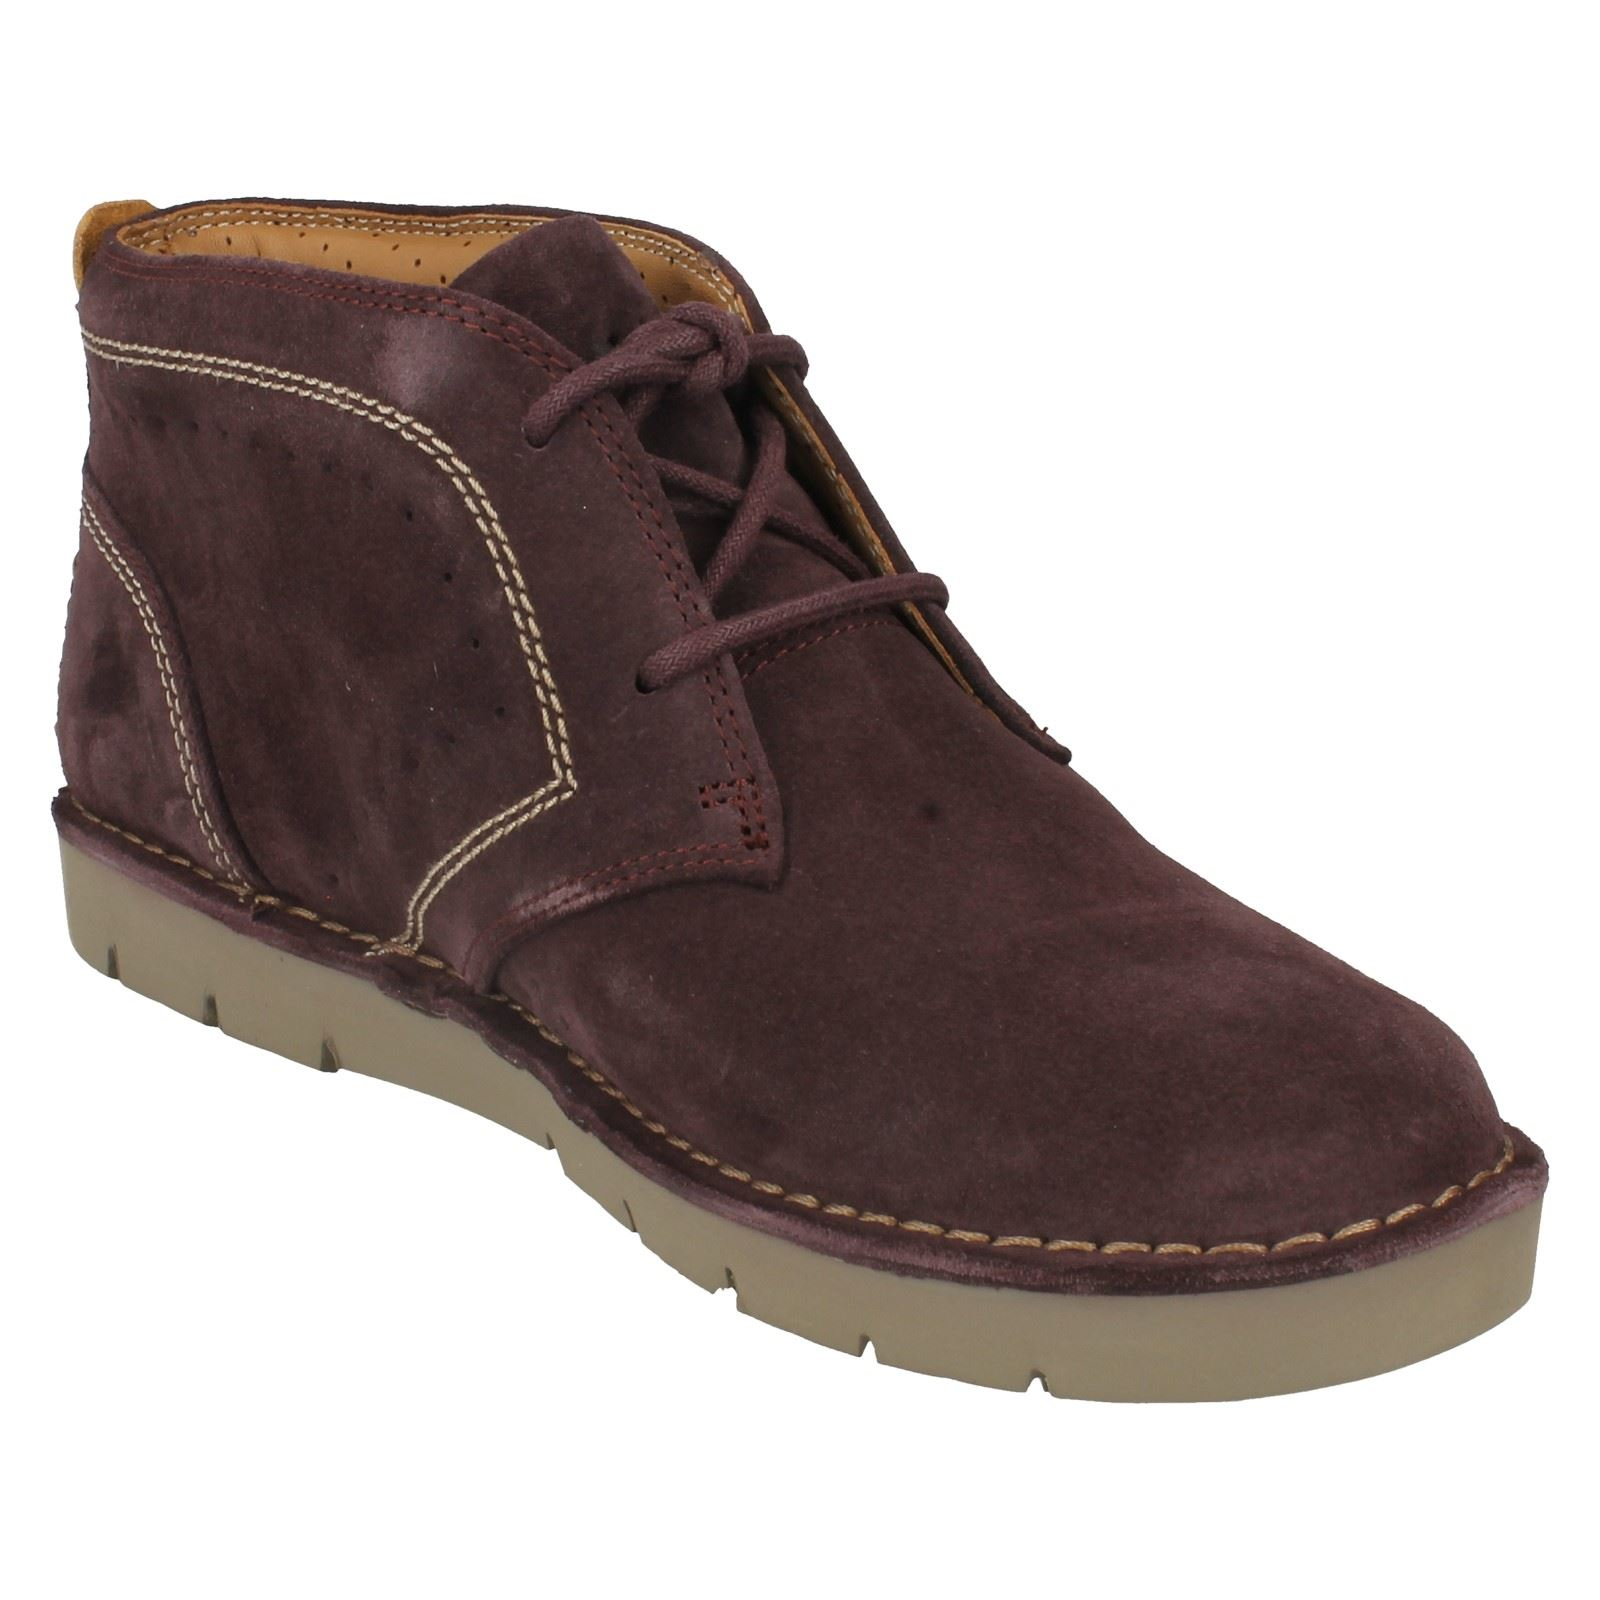 Ladies Clarks Casual Lace Up Boots Un Bstin